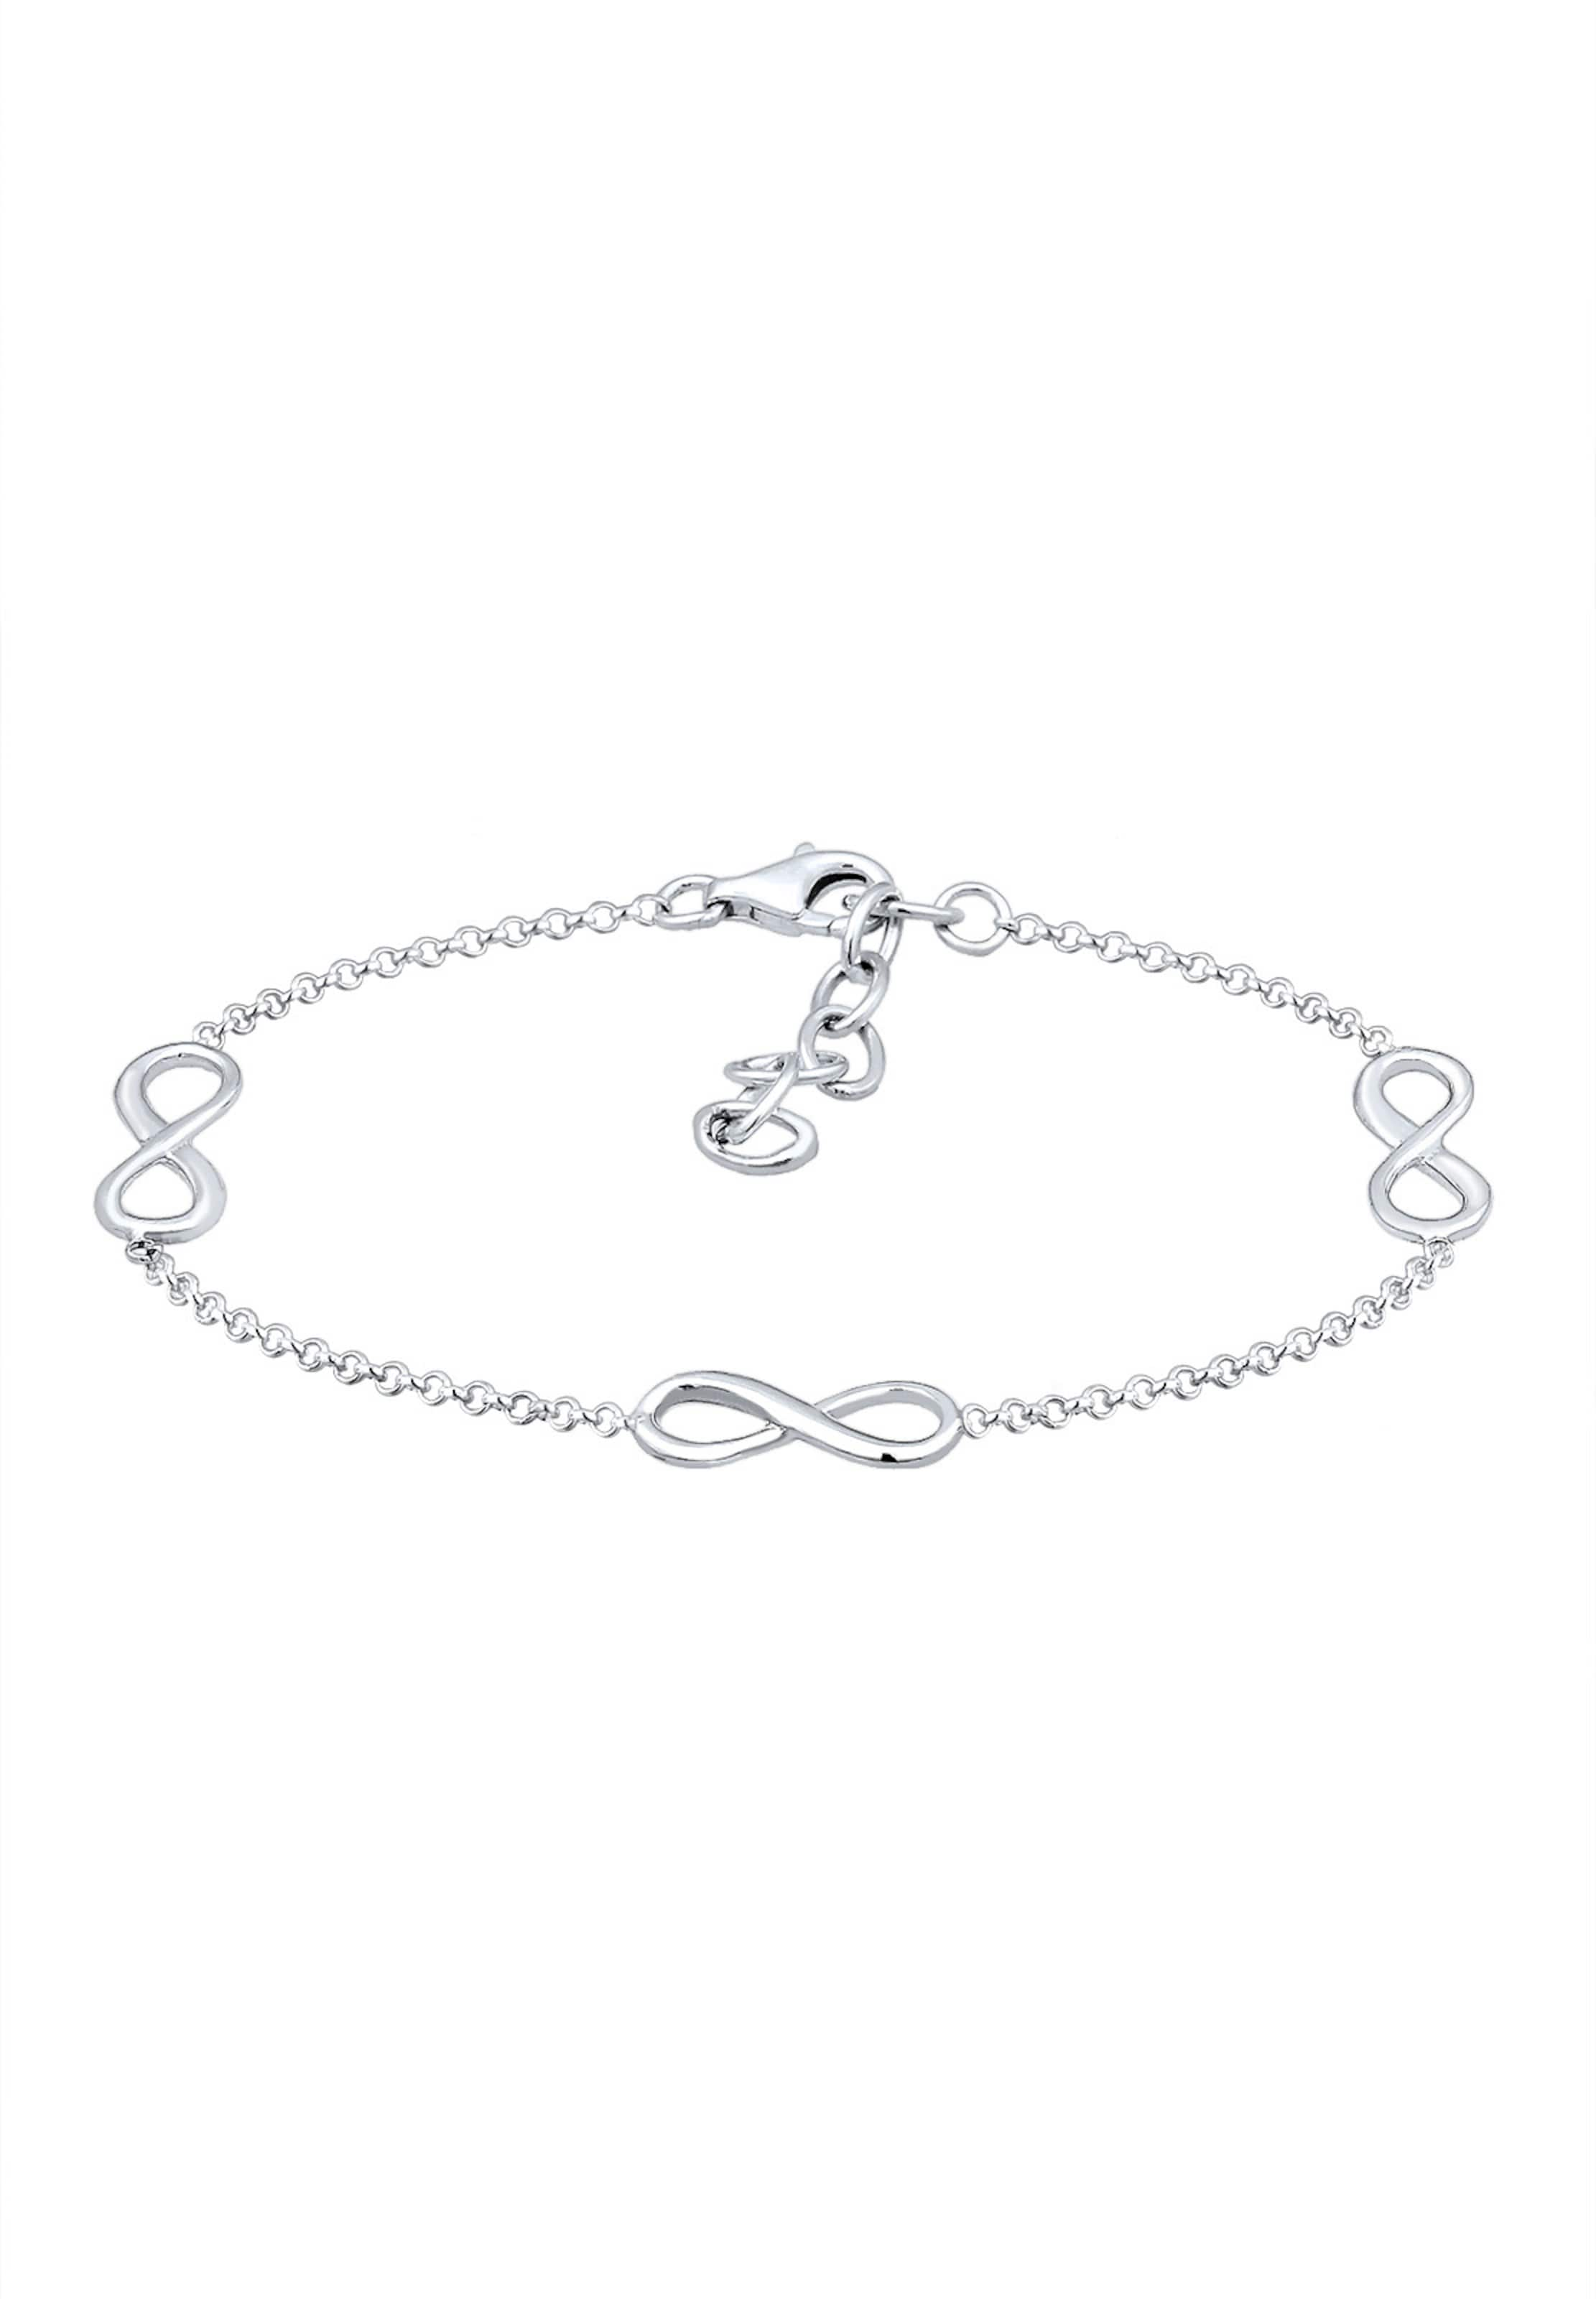 In In Elli 'infinity' Armband 'infinity' Silber Elli Armband Silber Elli Armband H2DWE9I